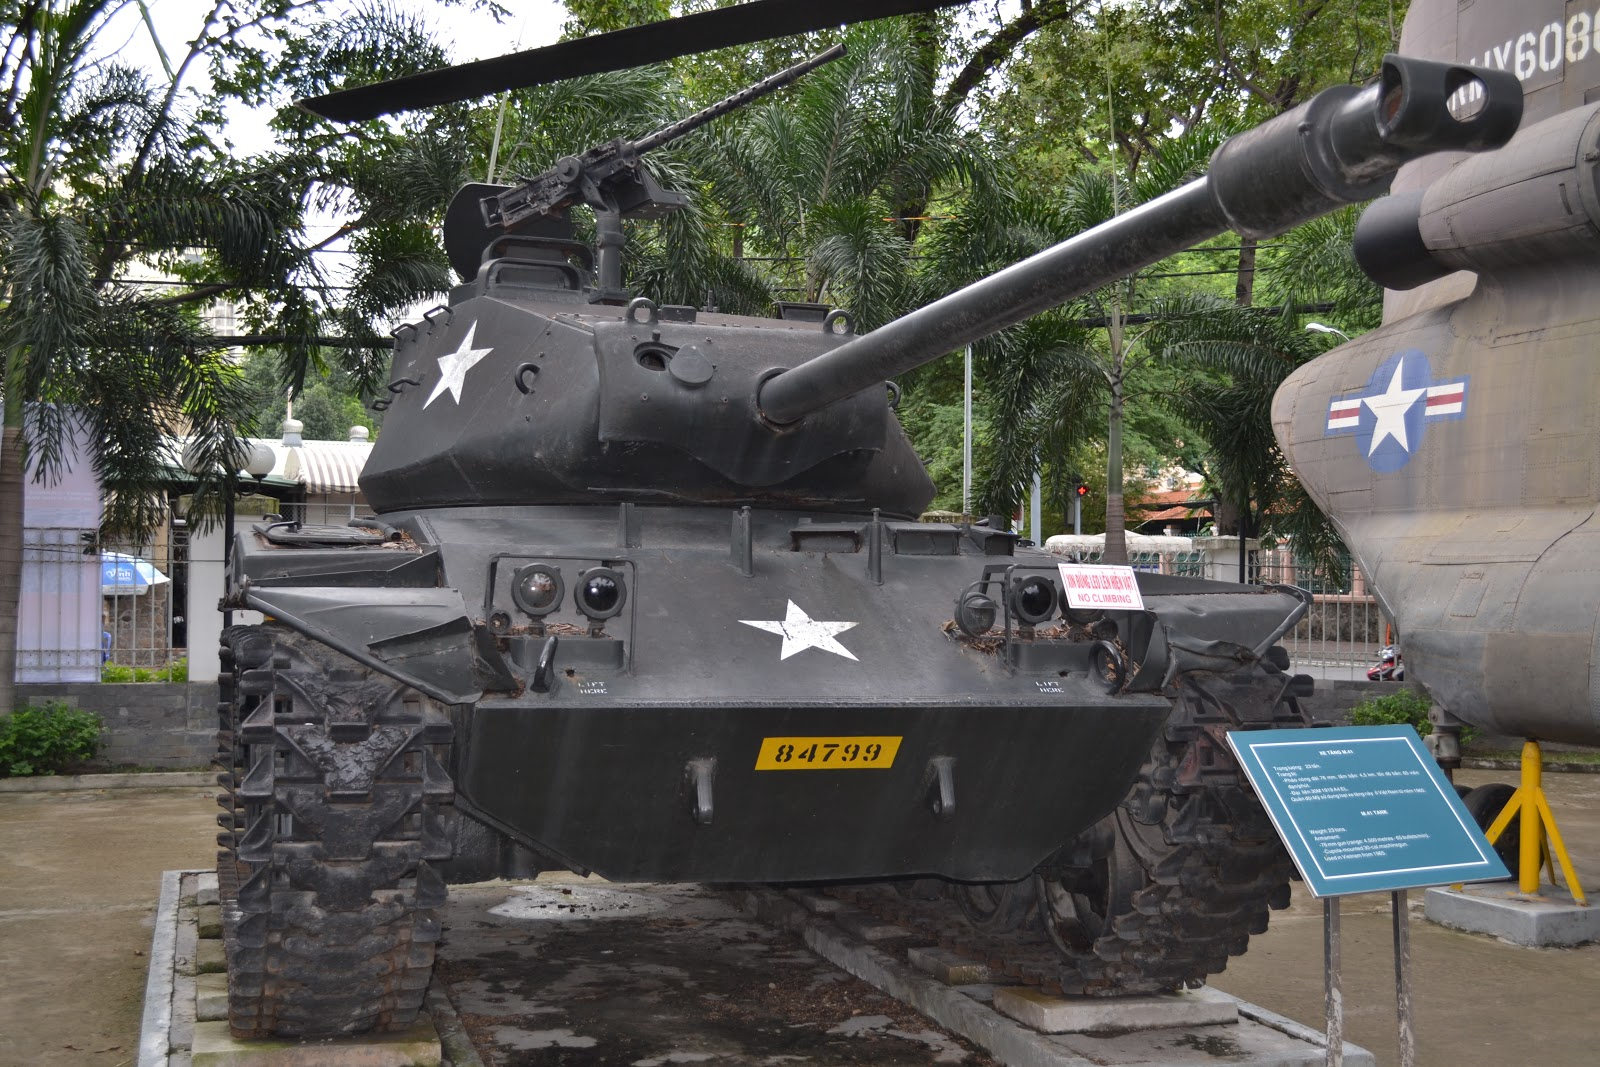 Tank displayed infront of War Remnants Museum